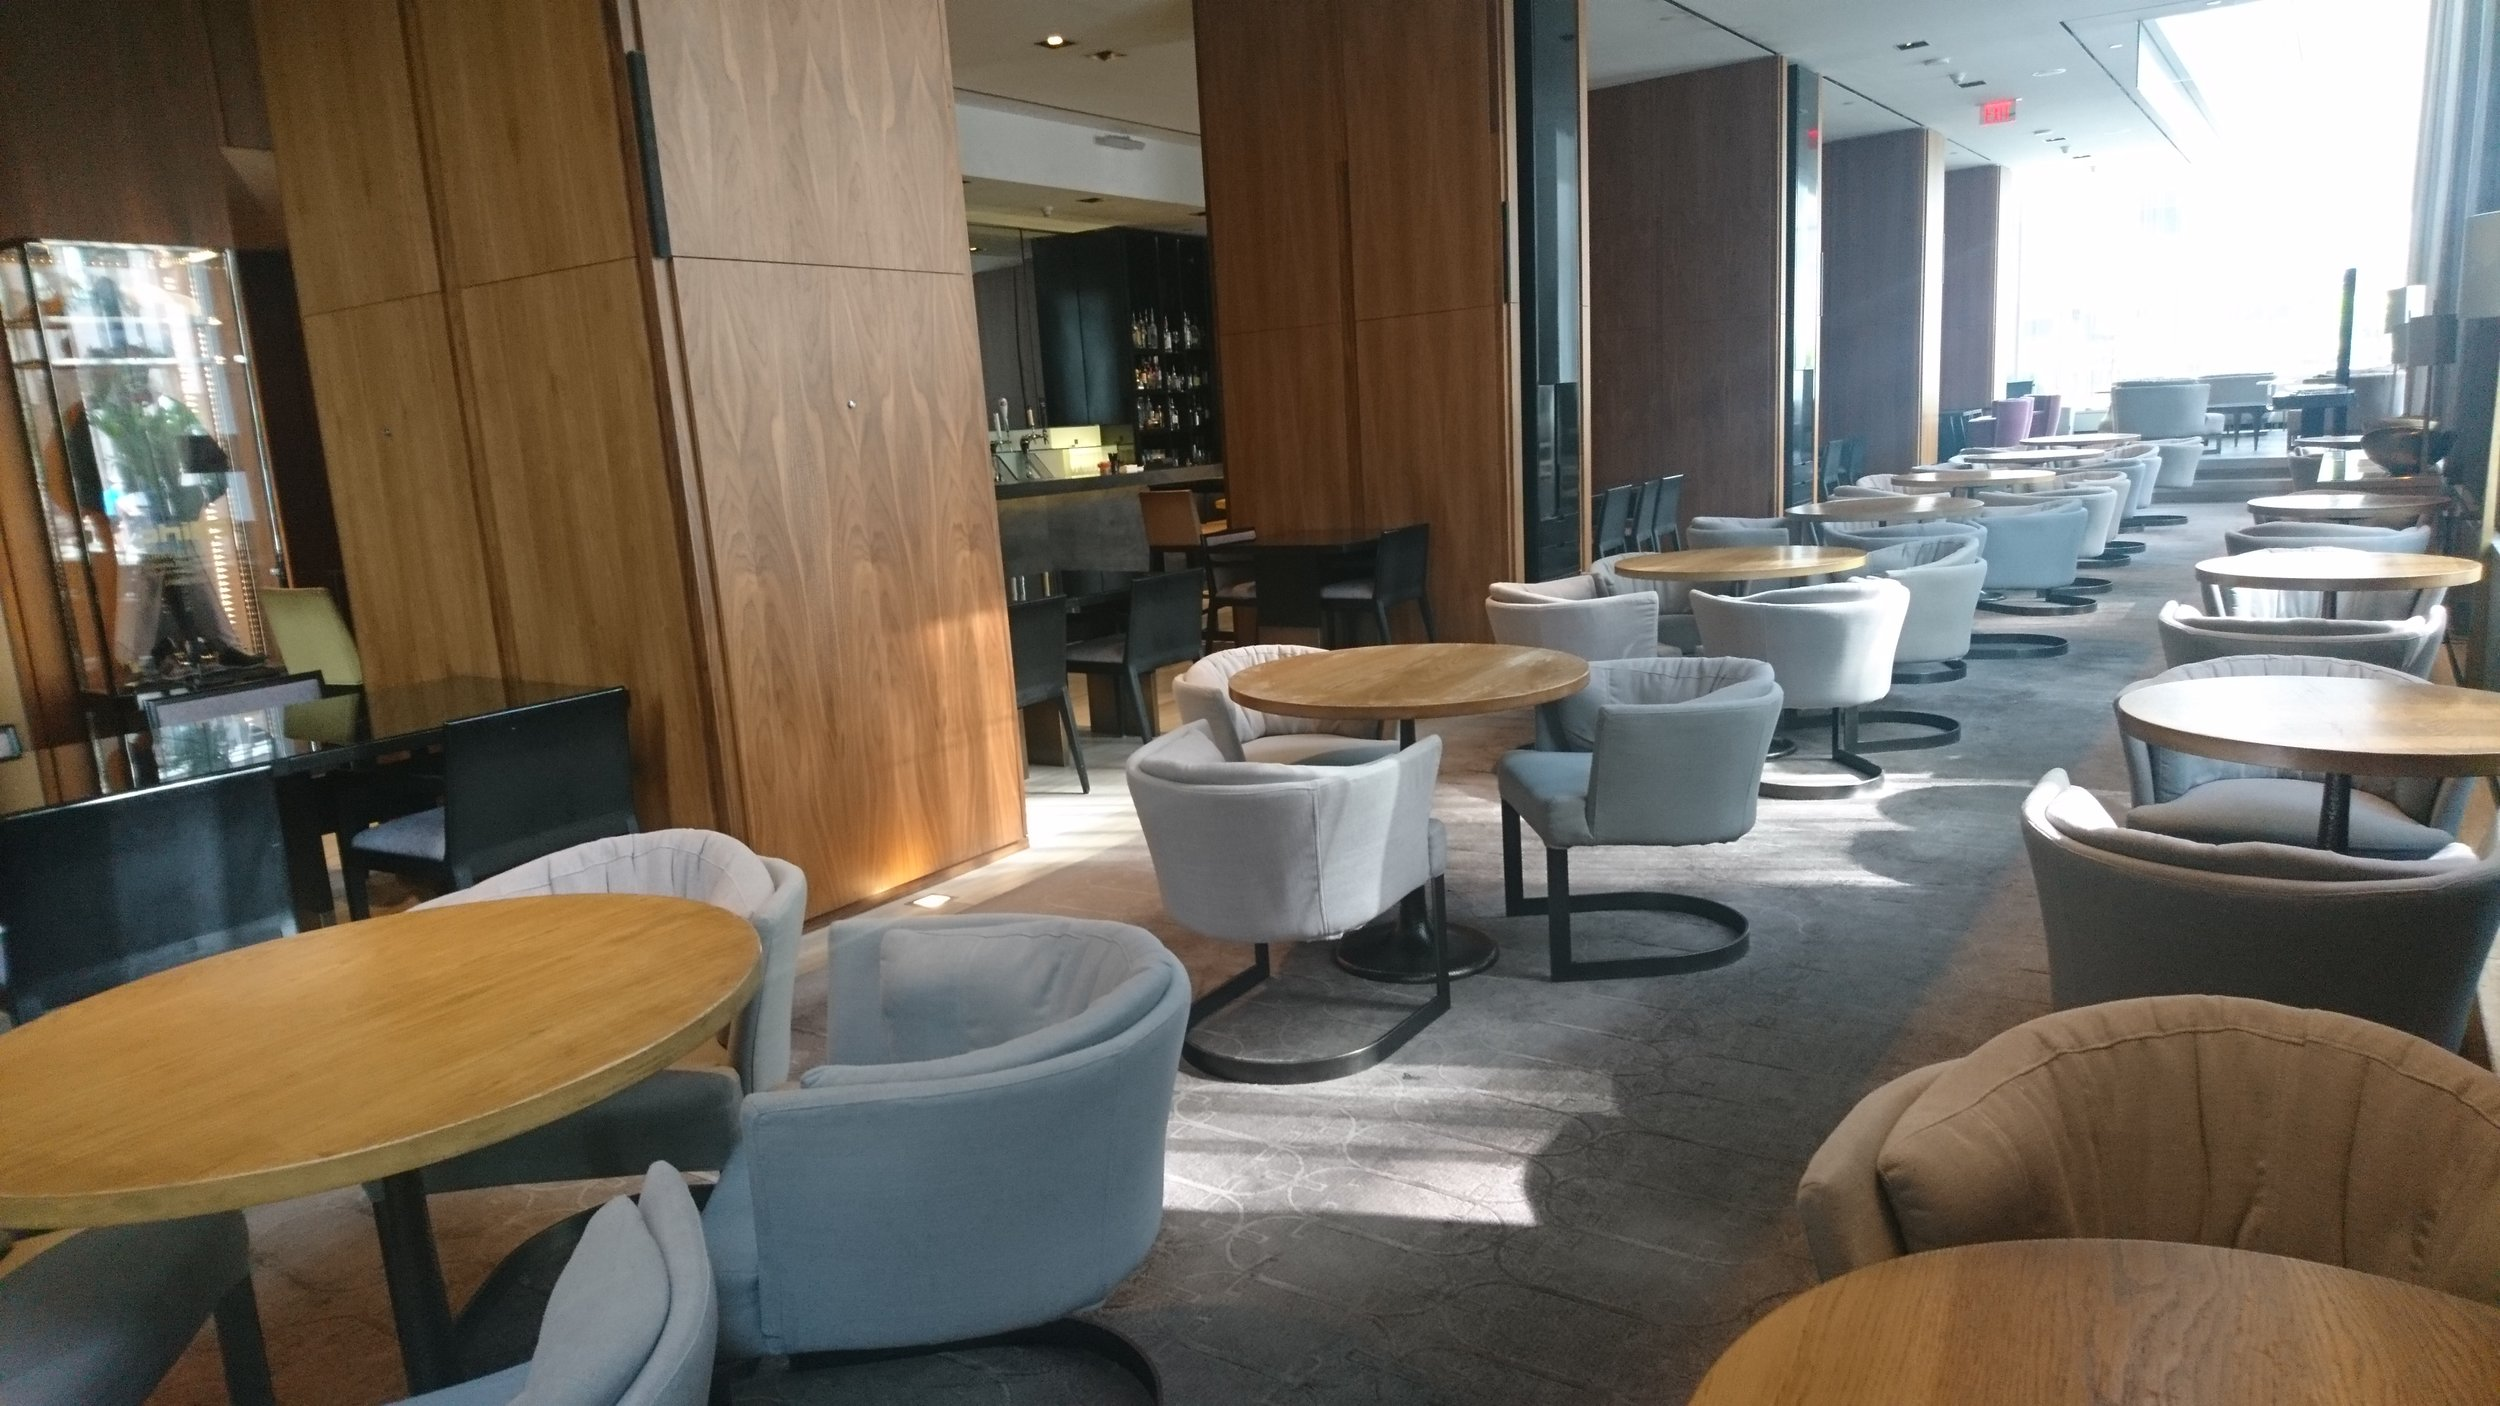 Picture of accessible interior of restaurant